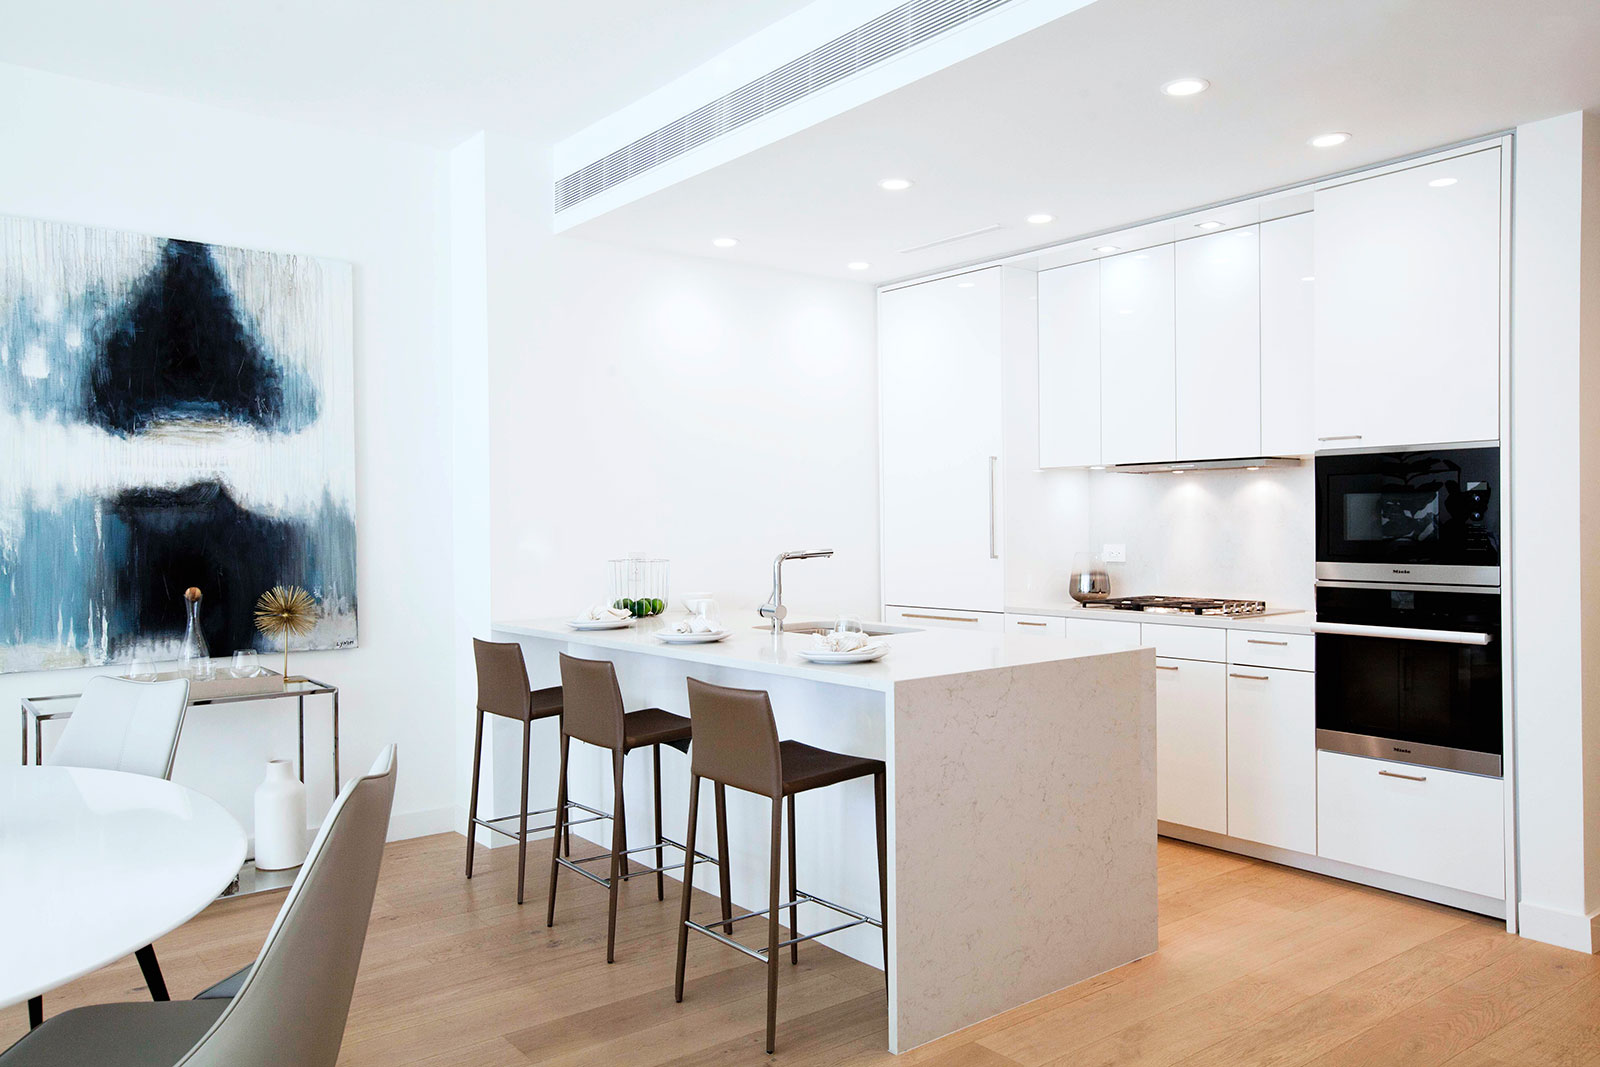 The Clare at 301 East 61st Street in Upper East Side